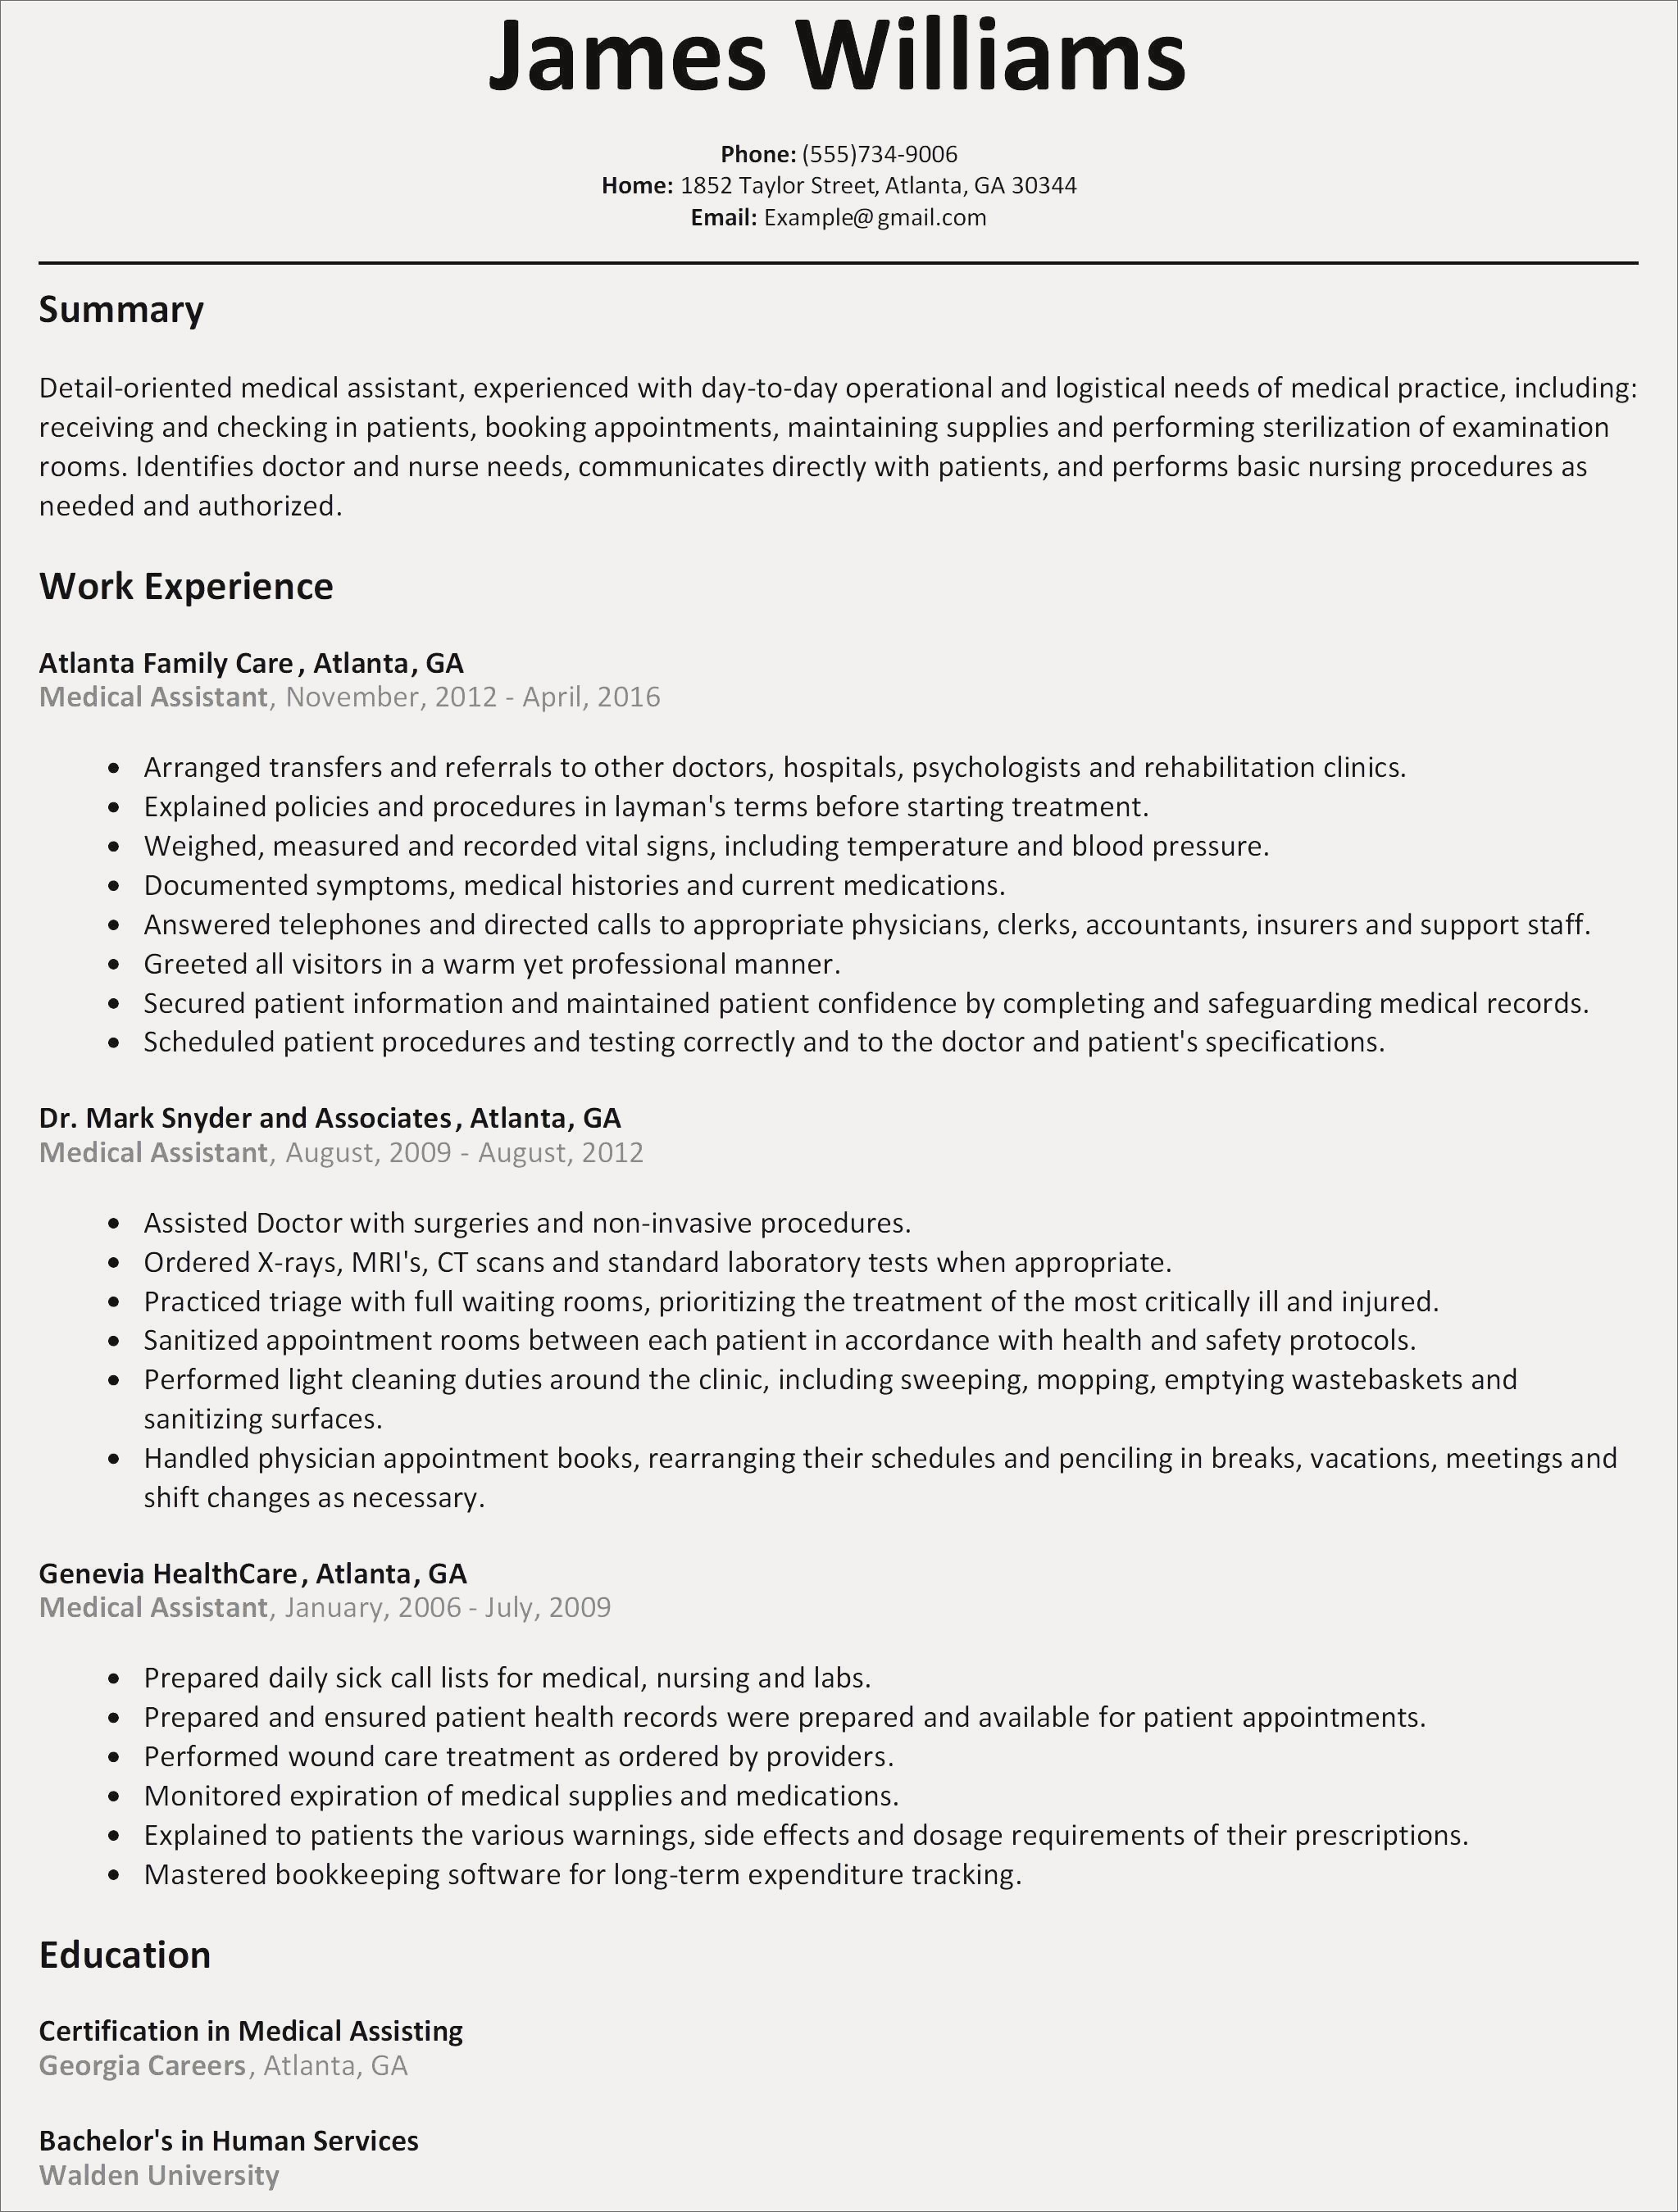 engineering resume Collection-Engineer Resume New Hr Resume Lovely Free Resume Examples Fresh Business Resume 0d 3-c